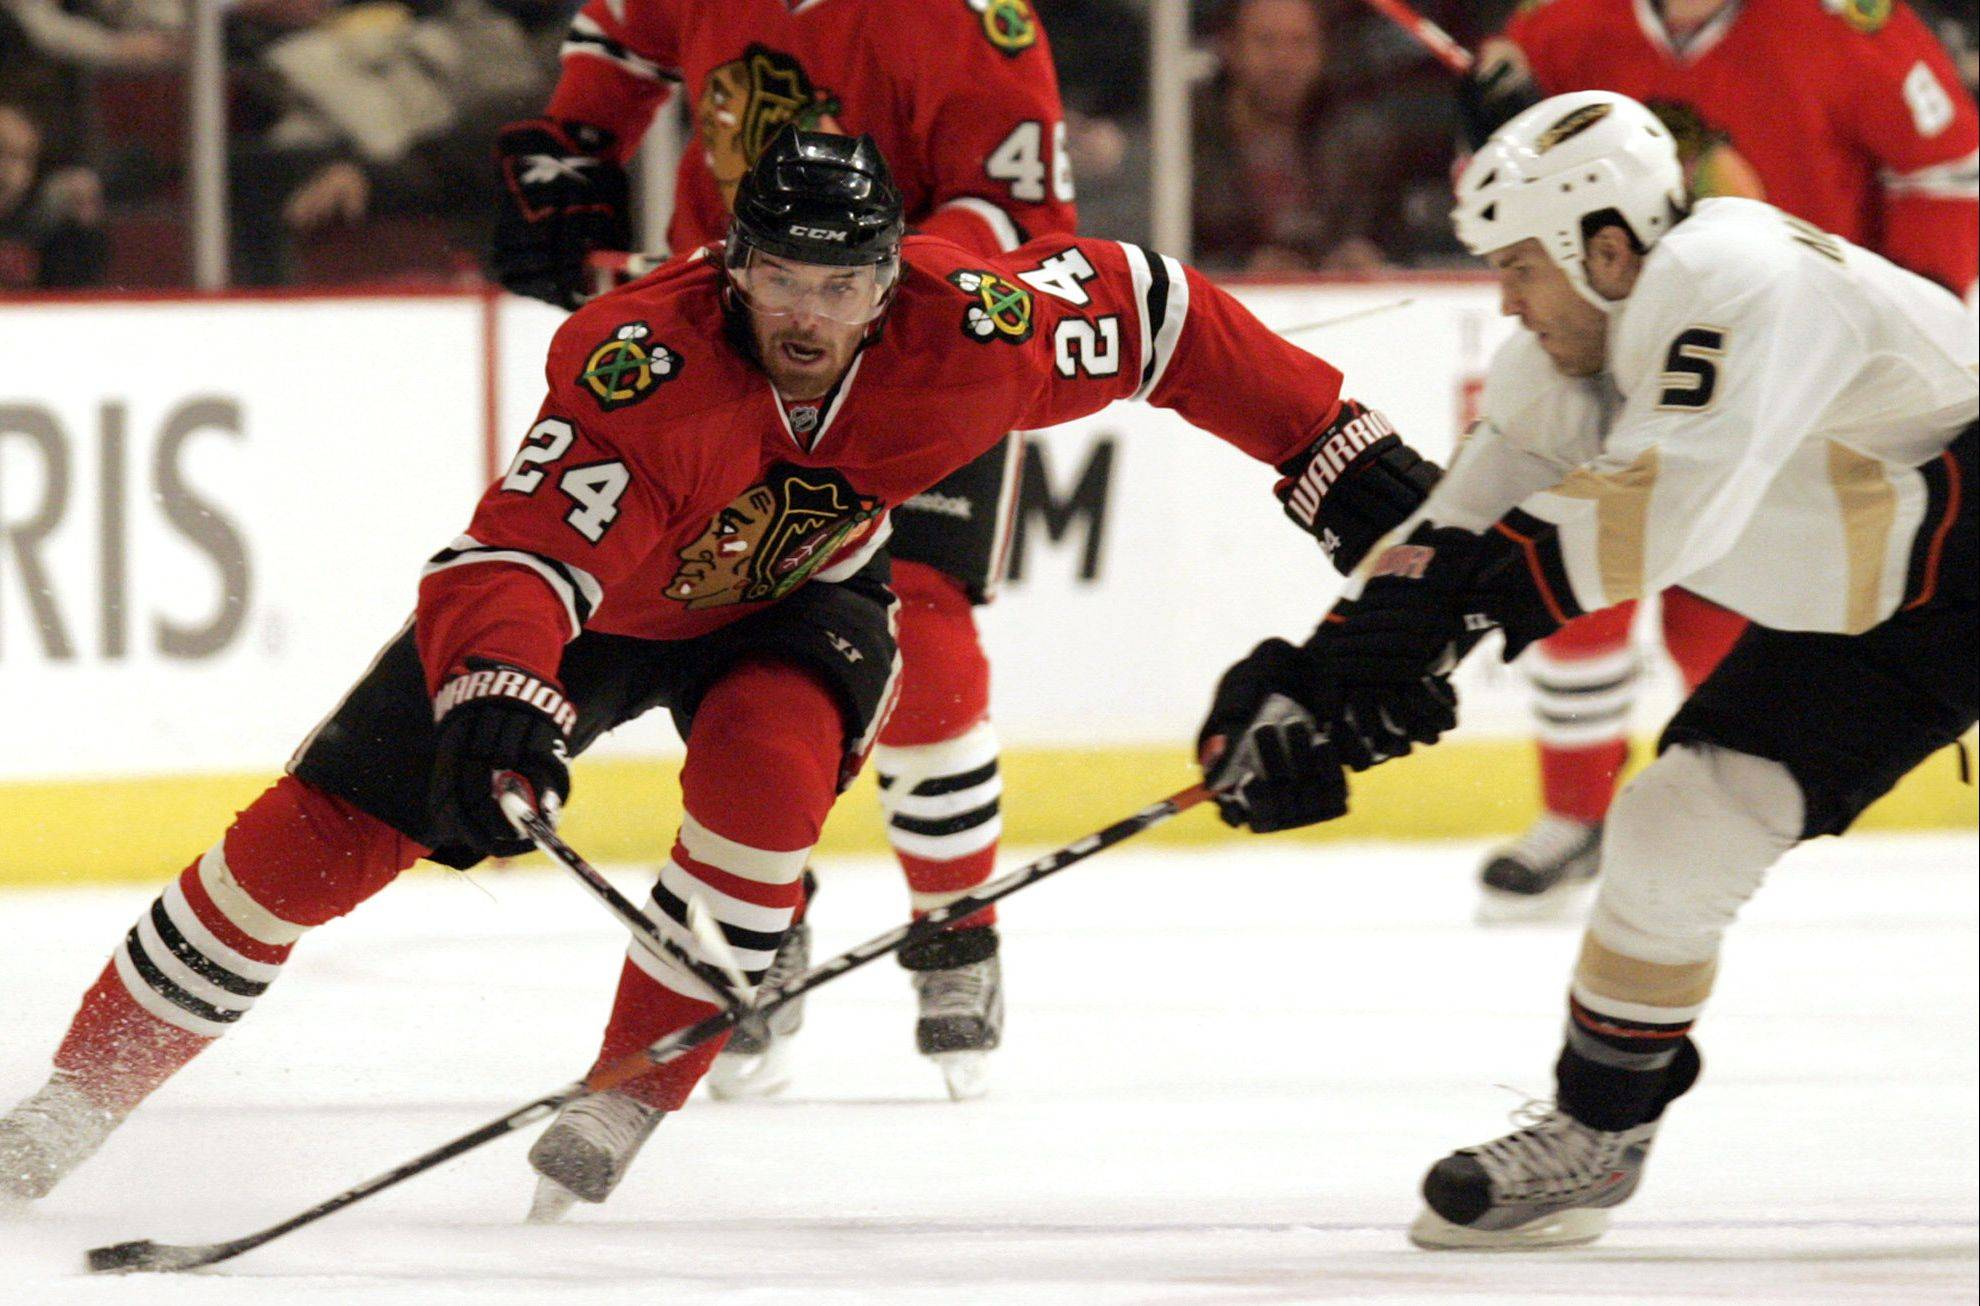 Defenseman Steve Montador, right, shown playing for the Anaheim Ducks in 2009, will join the Blackhawks this season.